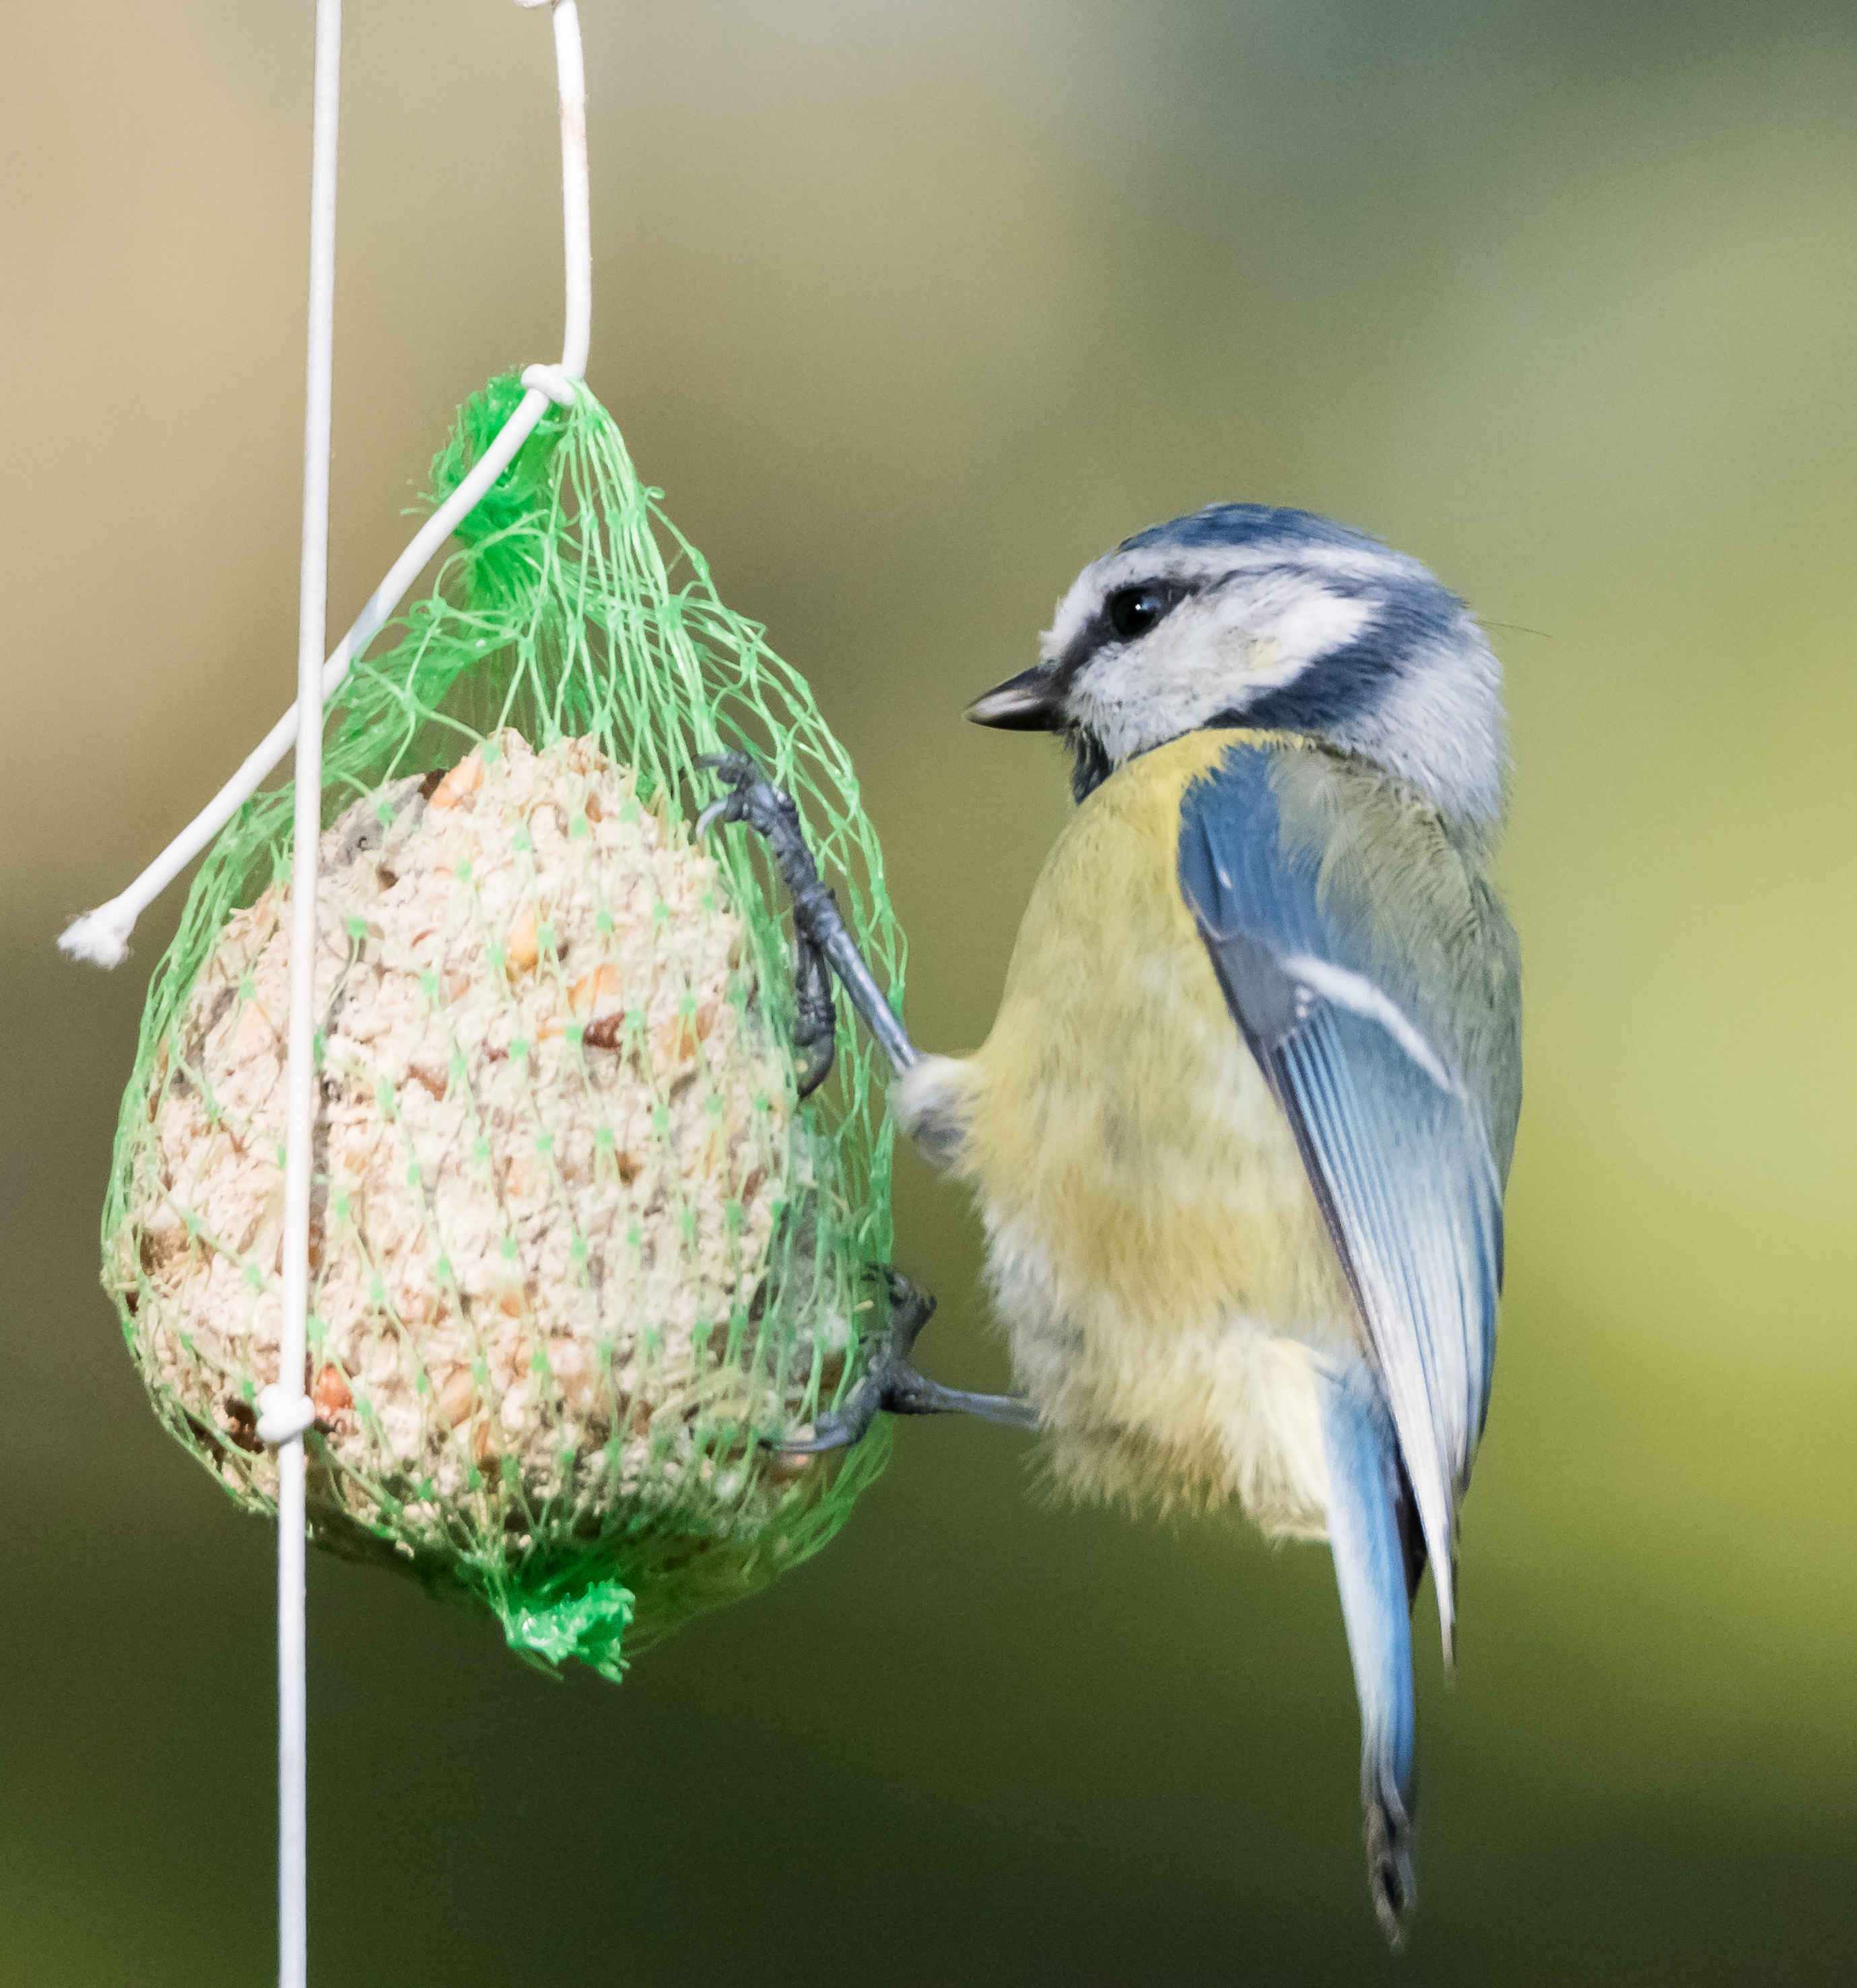 Autor: Magnus Johansson (blue tit) [CC BY-SA 2.0 (http://creativecommons.org/licenses/by-sa/2.0)], Wikimedia Commons